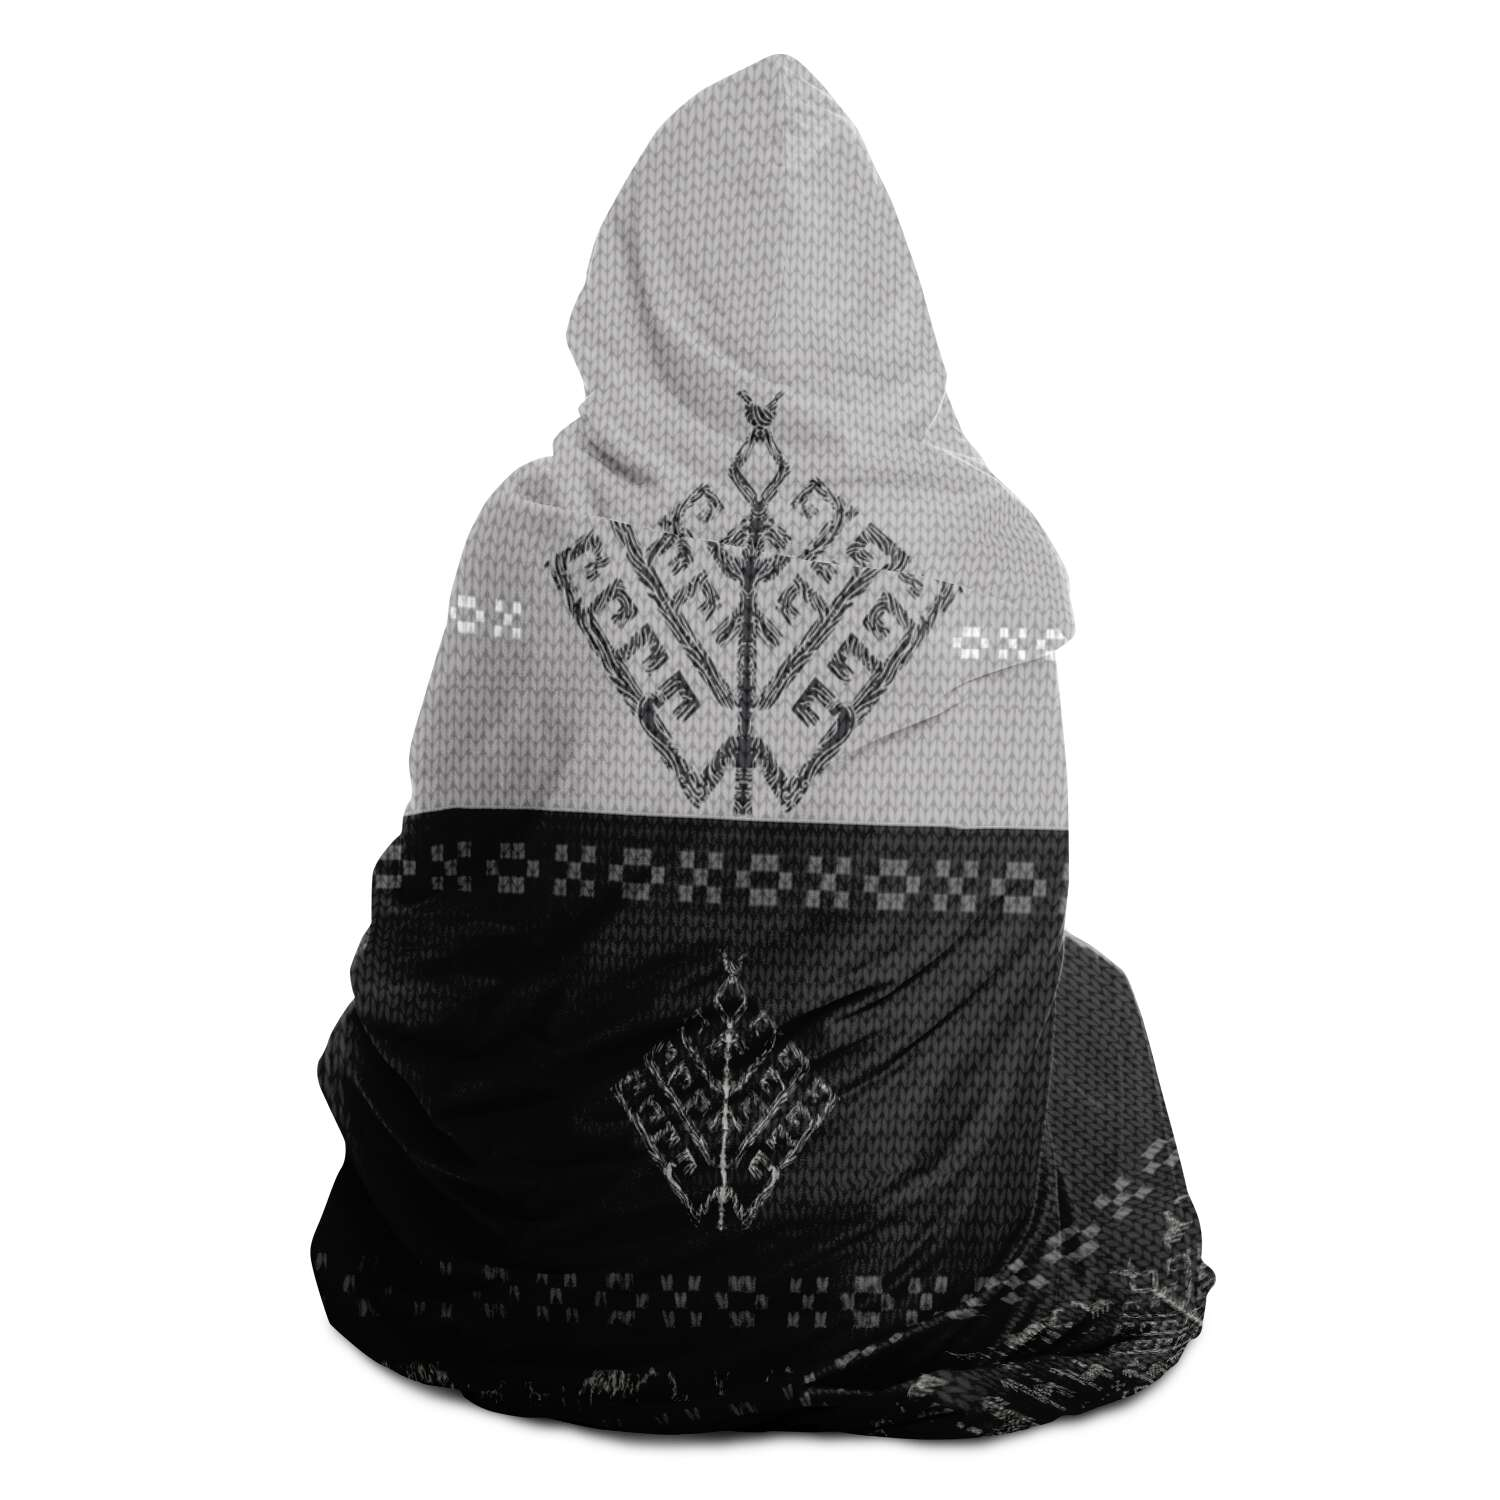 Folk Yggdrasil Viking Hooded Blanket